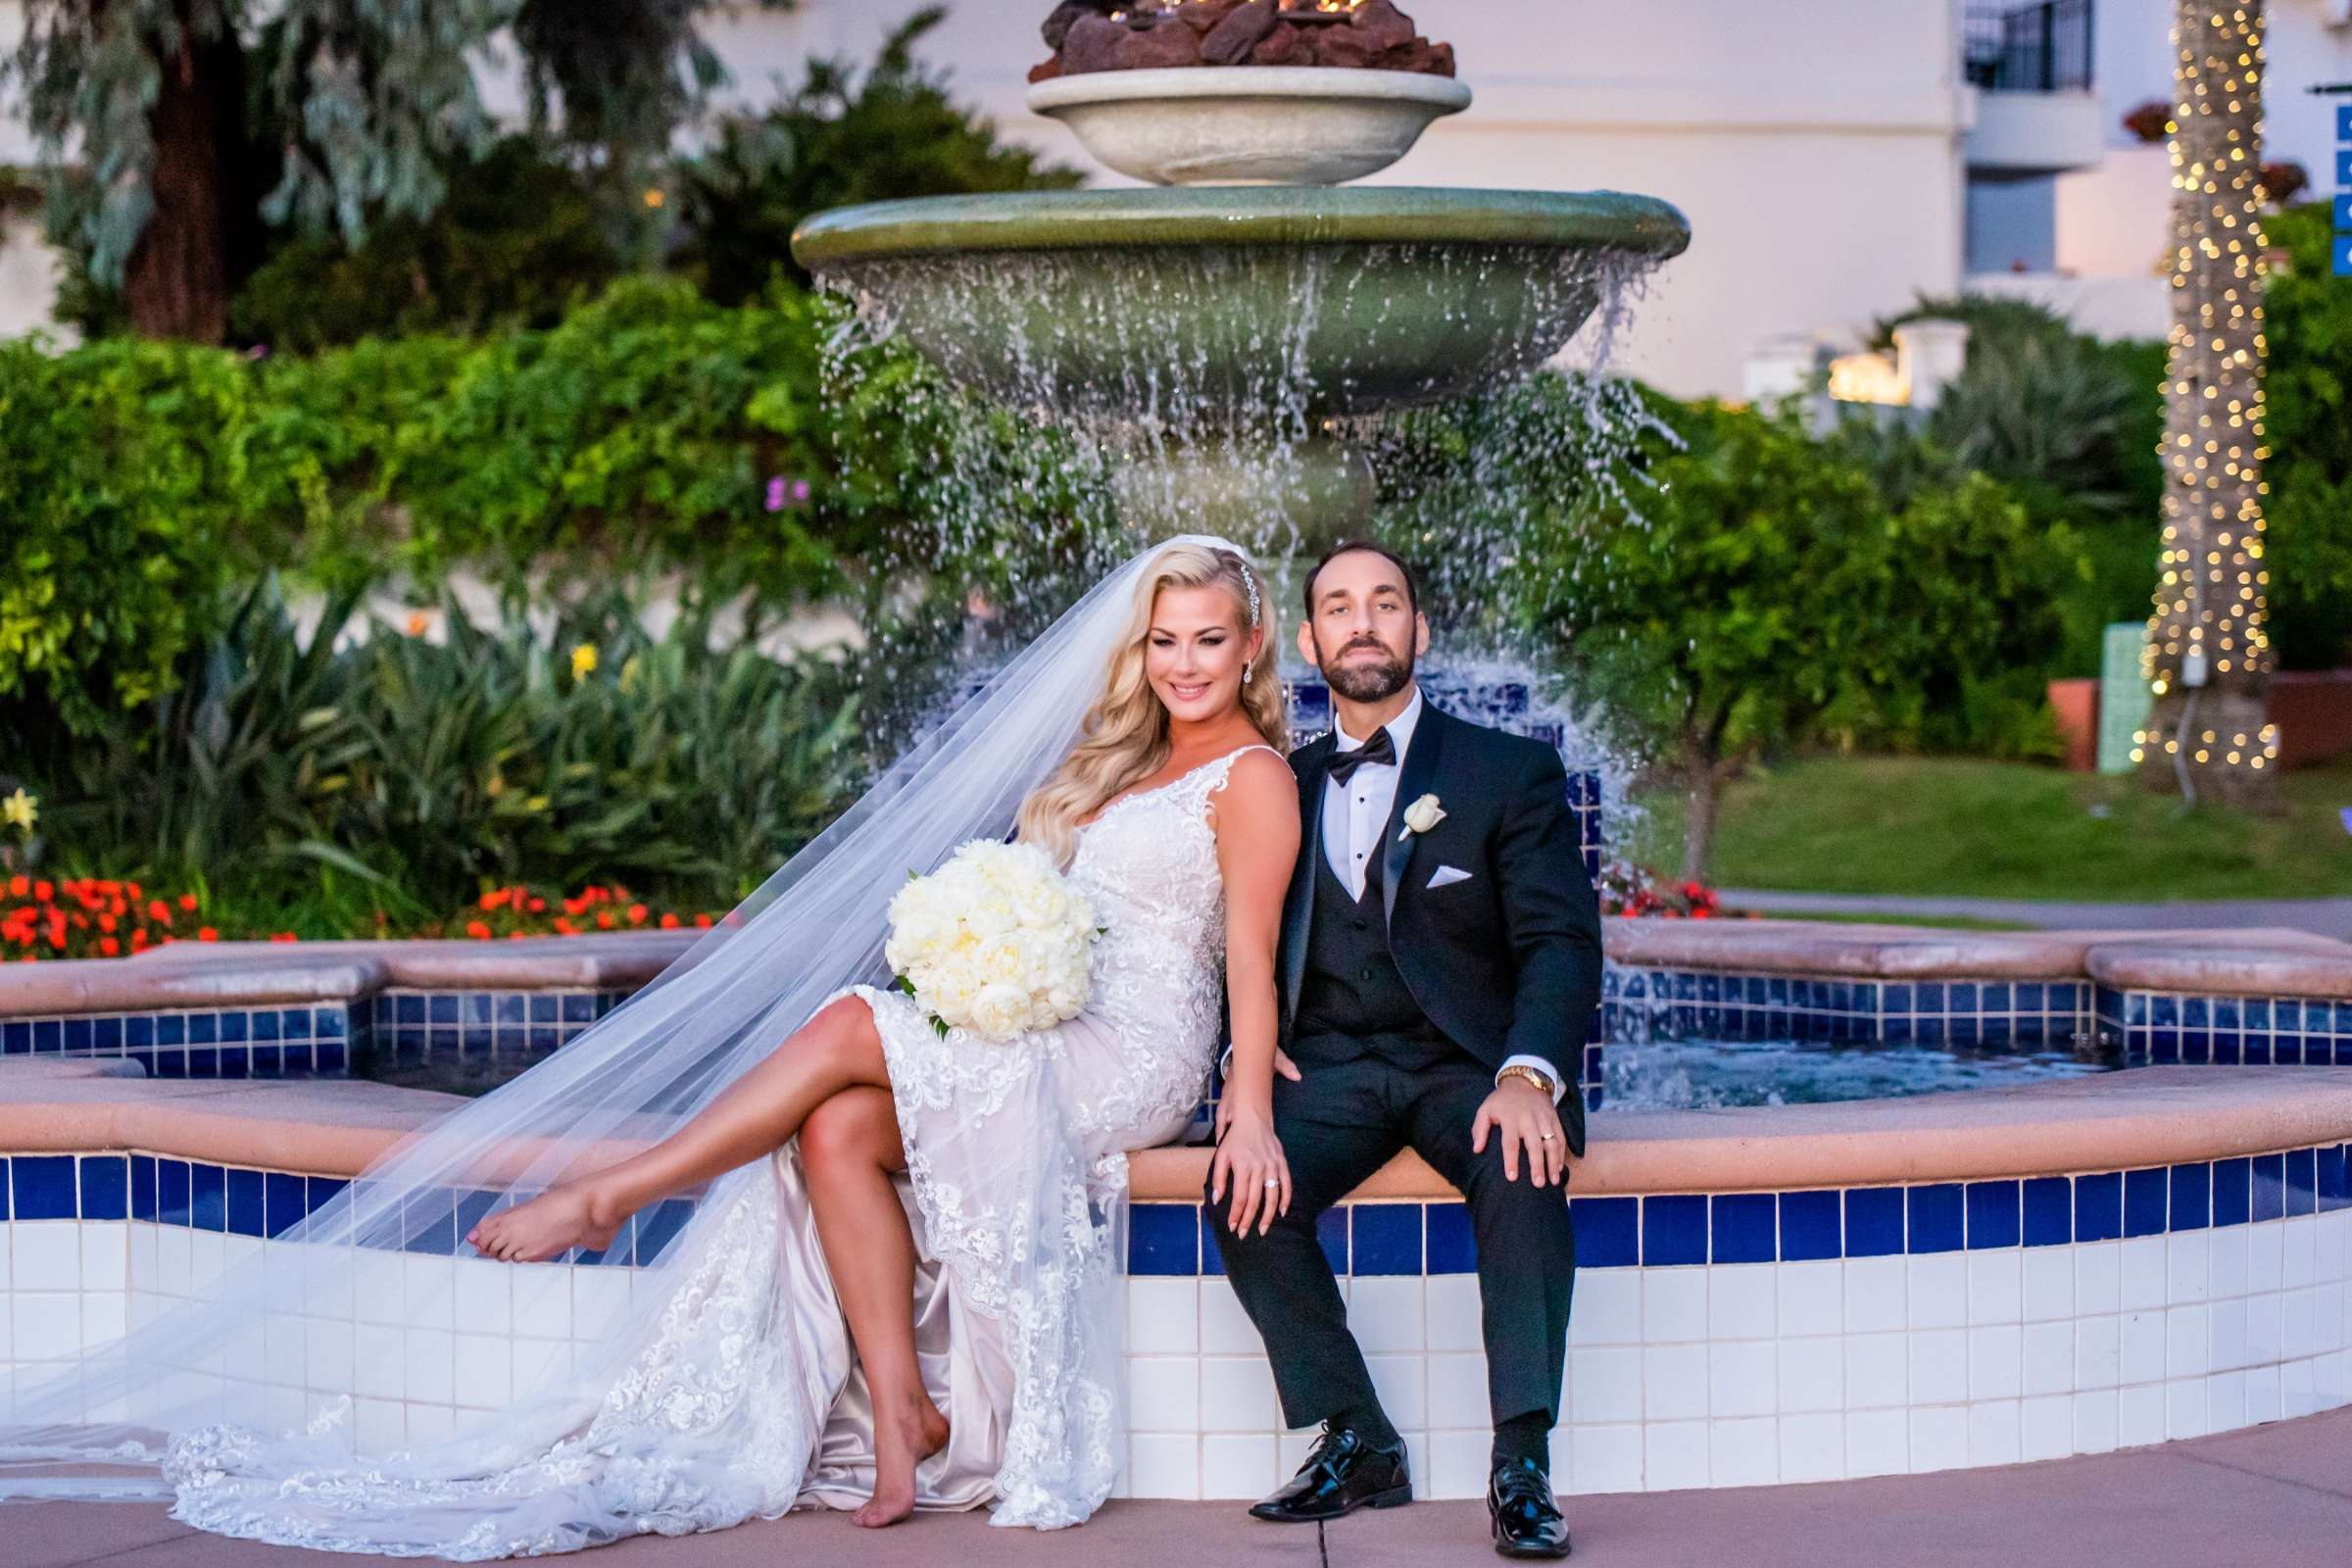 Omni La Costa Resort & Spa Wedding coordinated by SD Weddings by Gina, Jessica and Tom Wedding Photo #571770 by True Photography